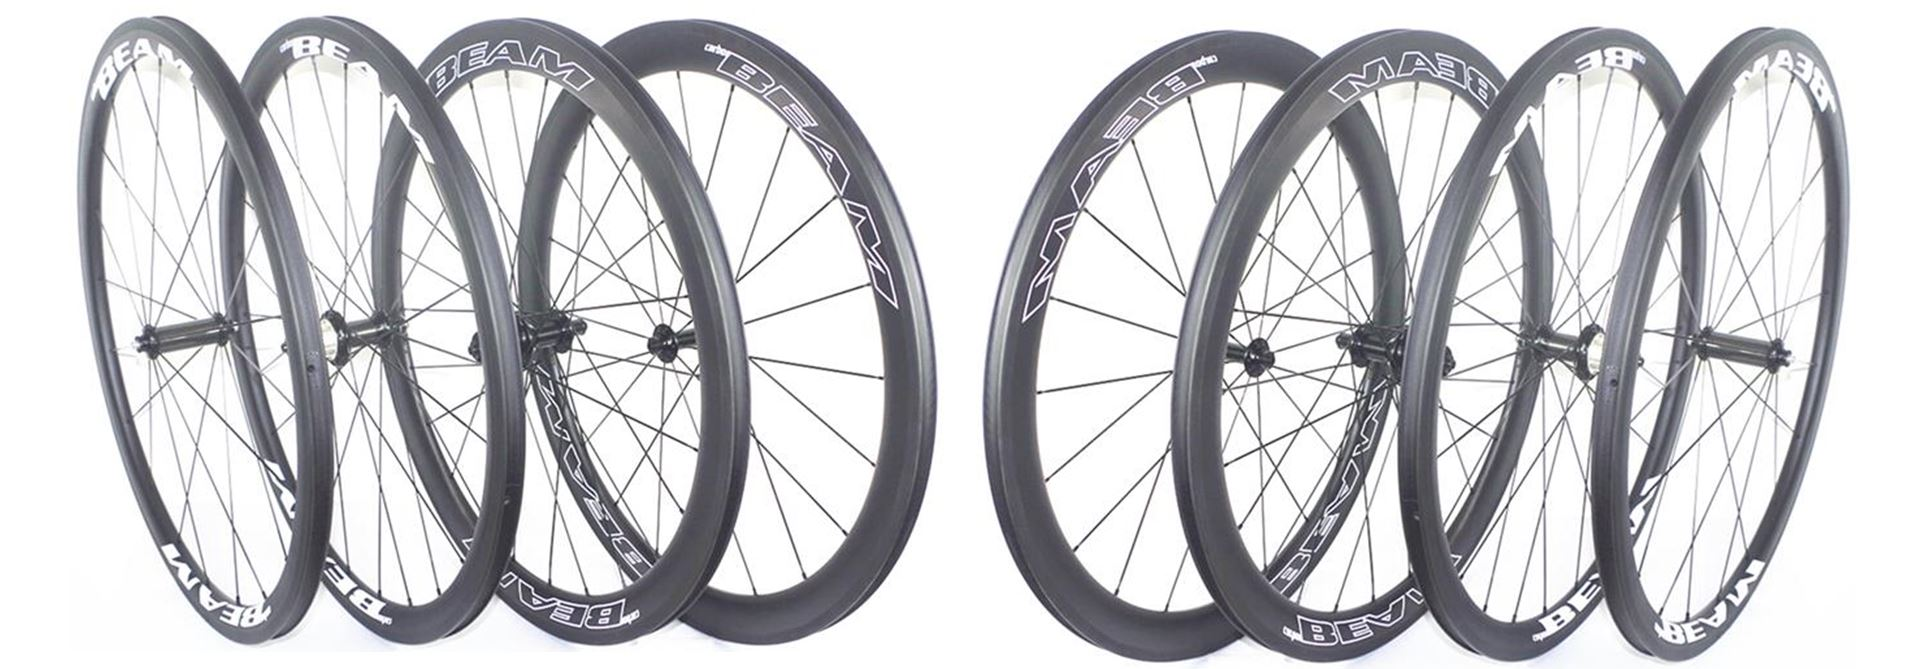 carbonbeam Factory OEM &ODM carbon bike rims and wheels,road/tt/mtb/fatbike/bmx bike carbon rims